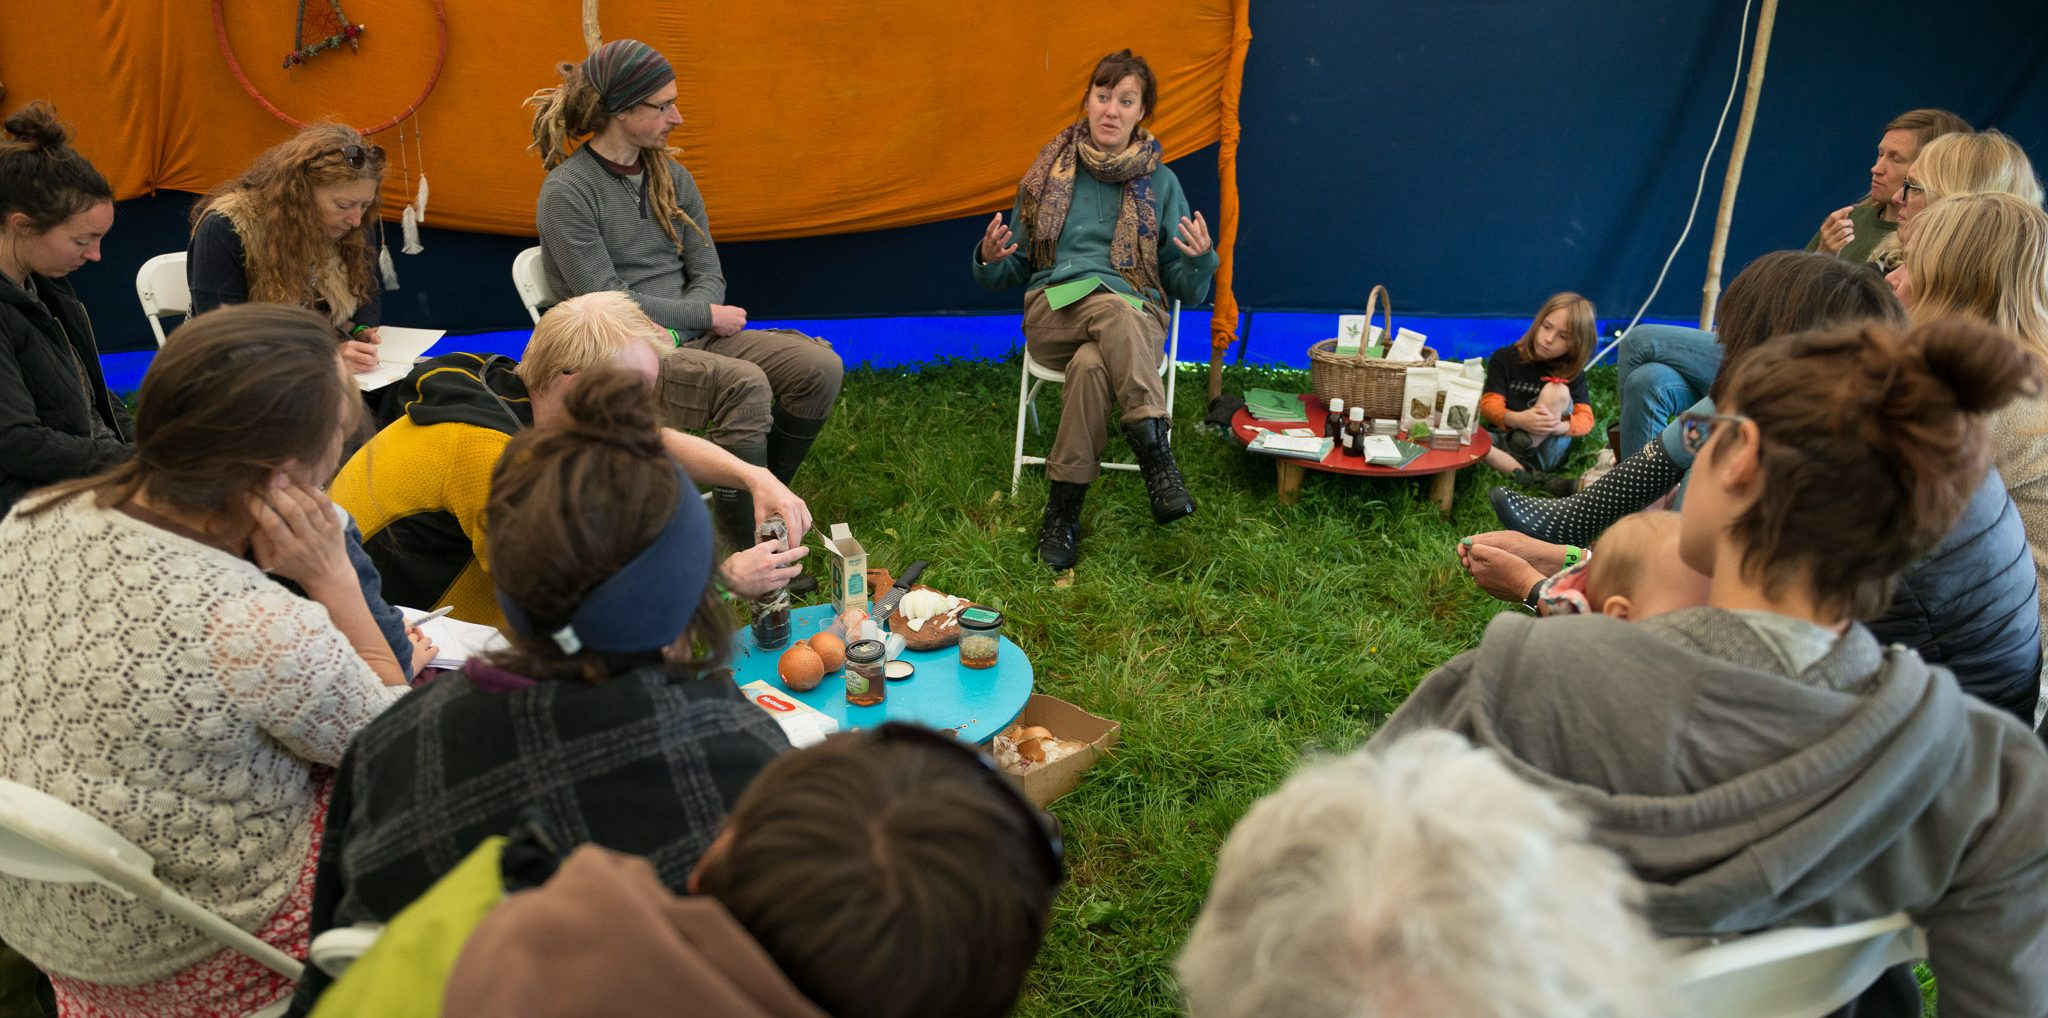 zoe nettles giving her kitchen medicines workshop to an interested group of 20 people sat in a large tent